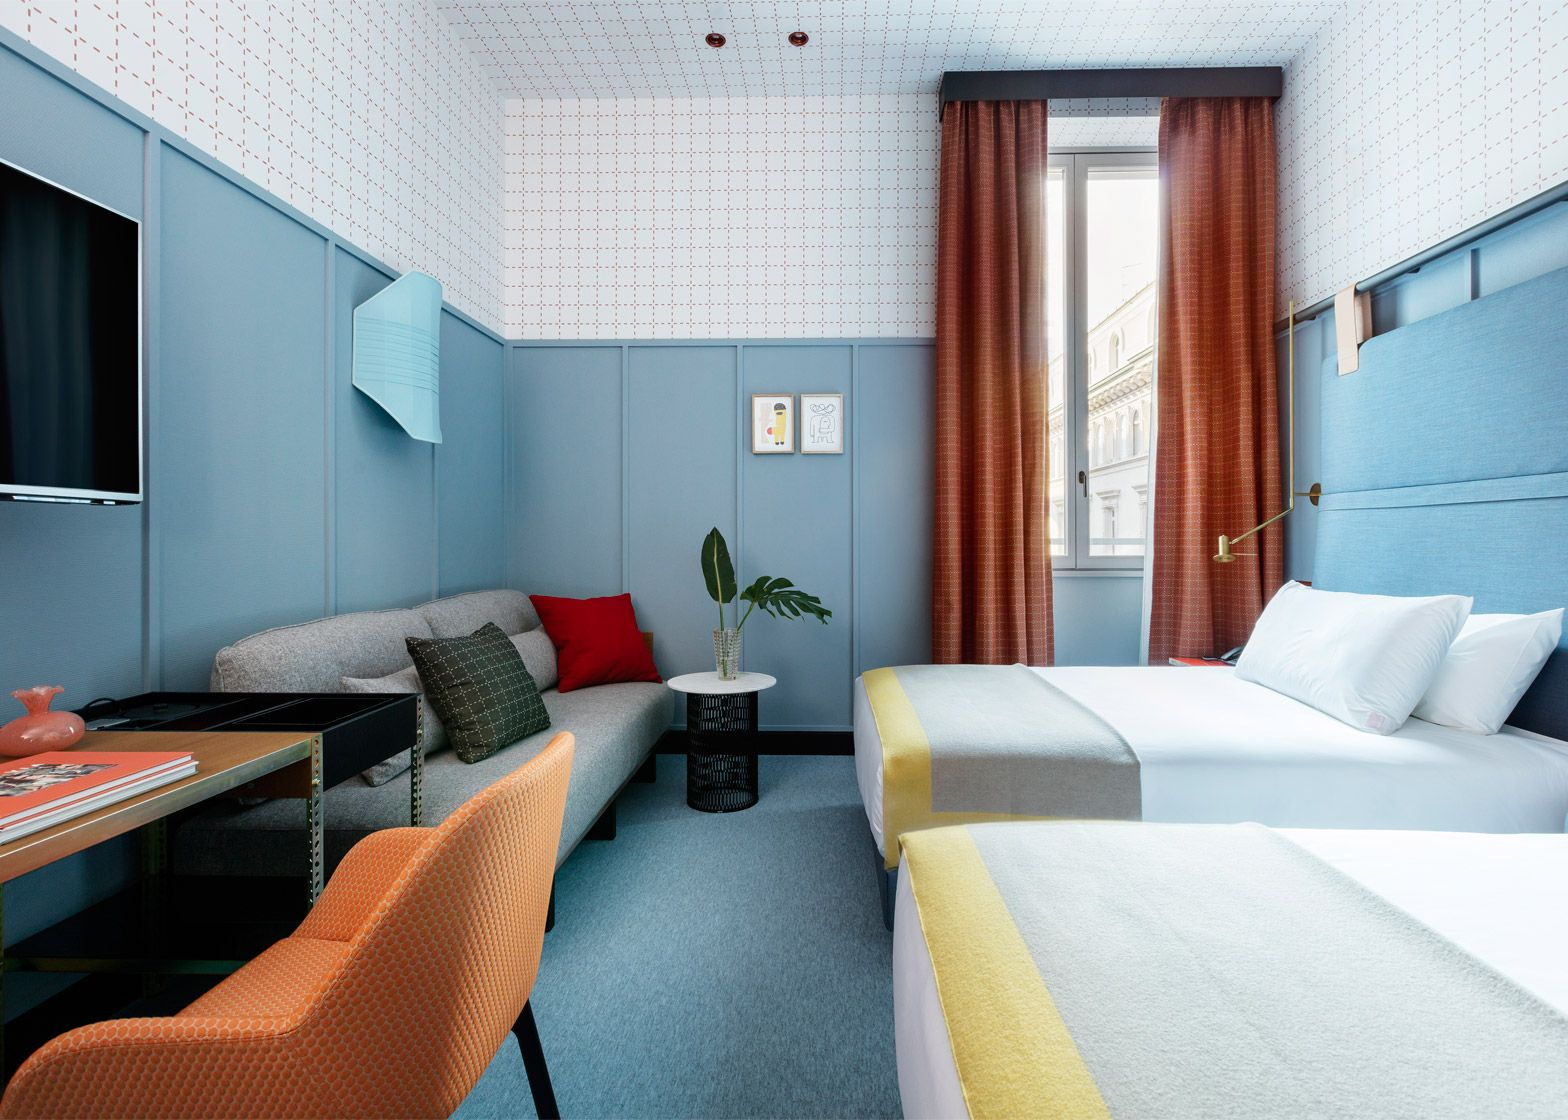 Patricia urquiola designs colourful milan outpost for room for Design hotel chain